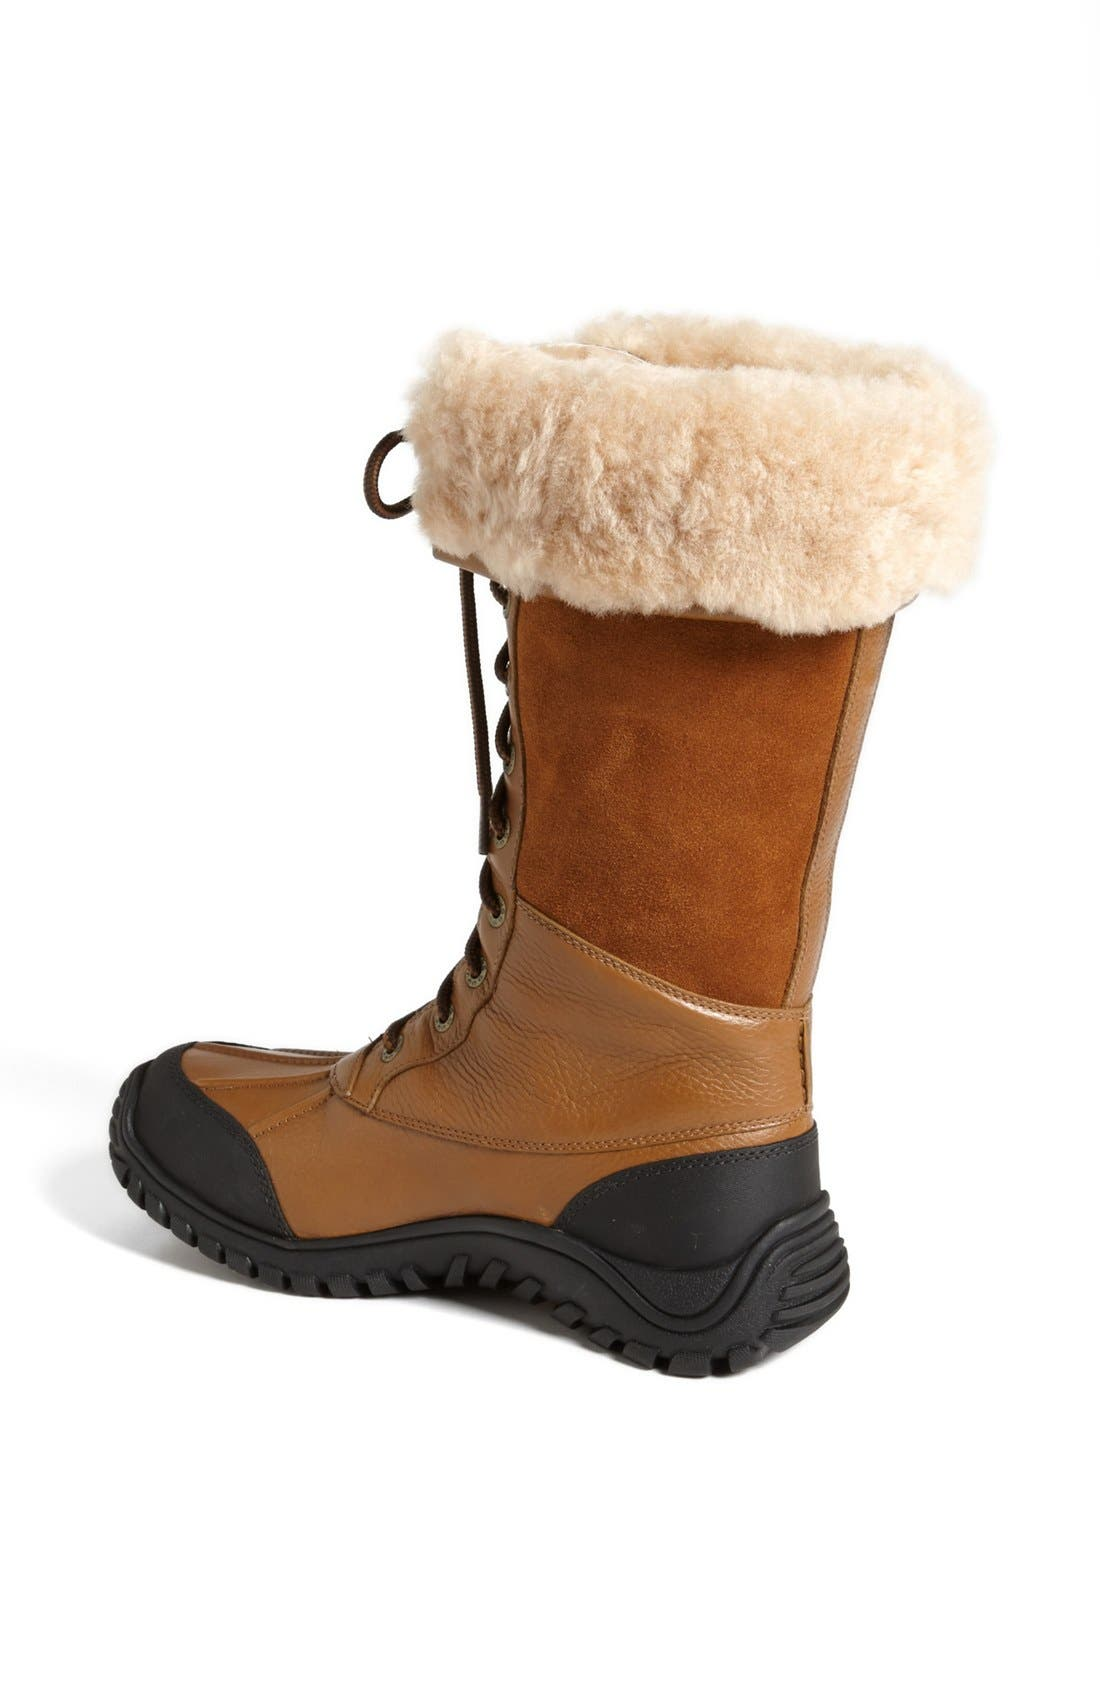 Adirondack Waterproof Tall Boot,                             Alternate thumbnail 10, color,